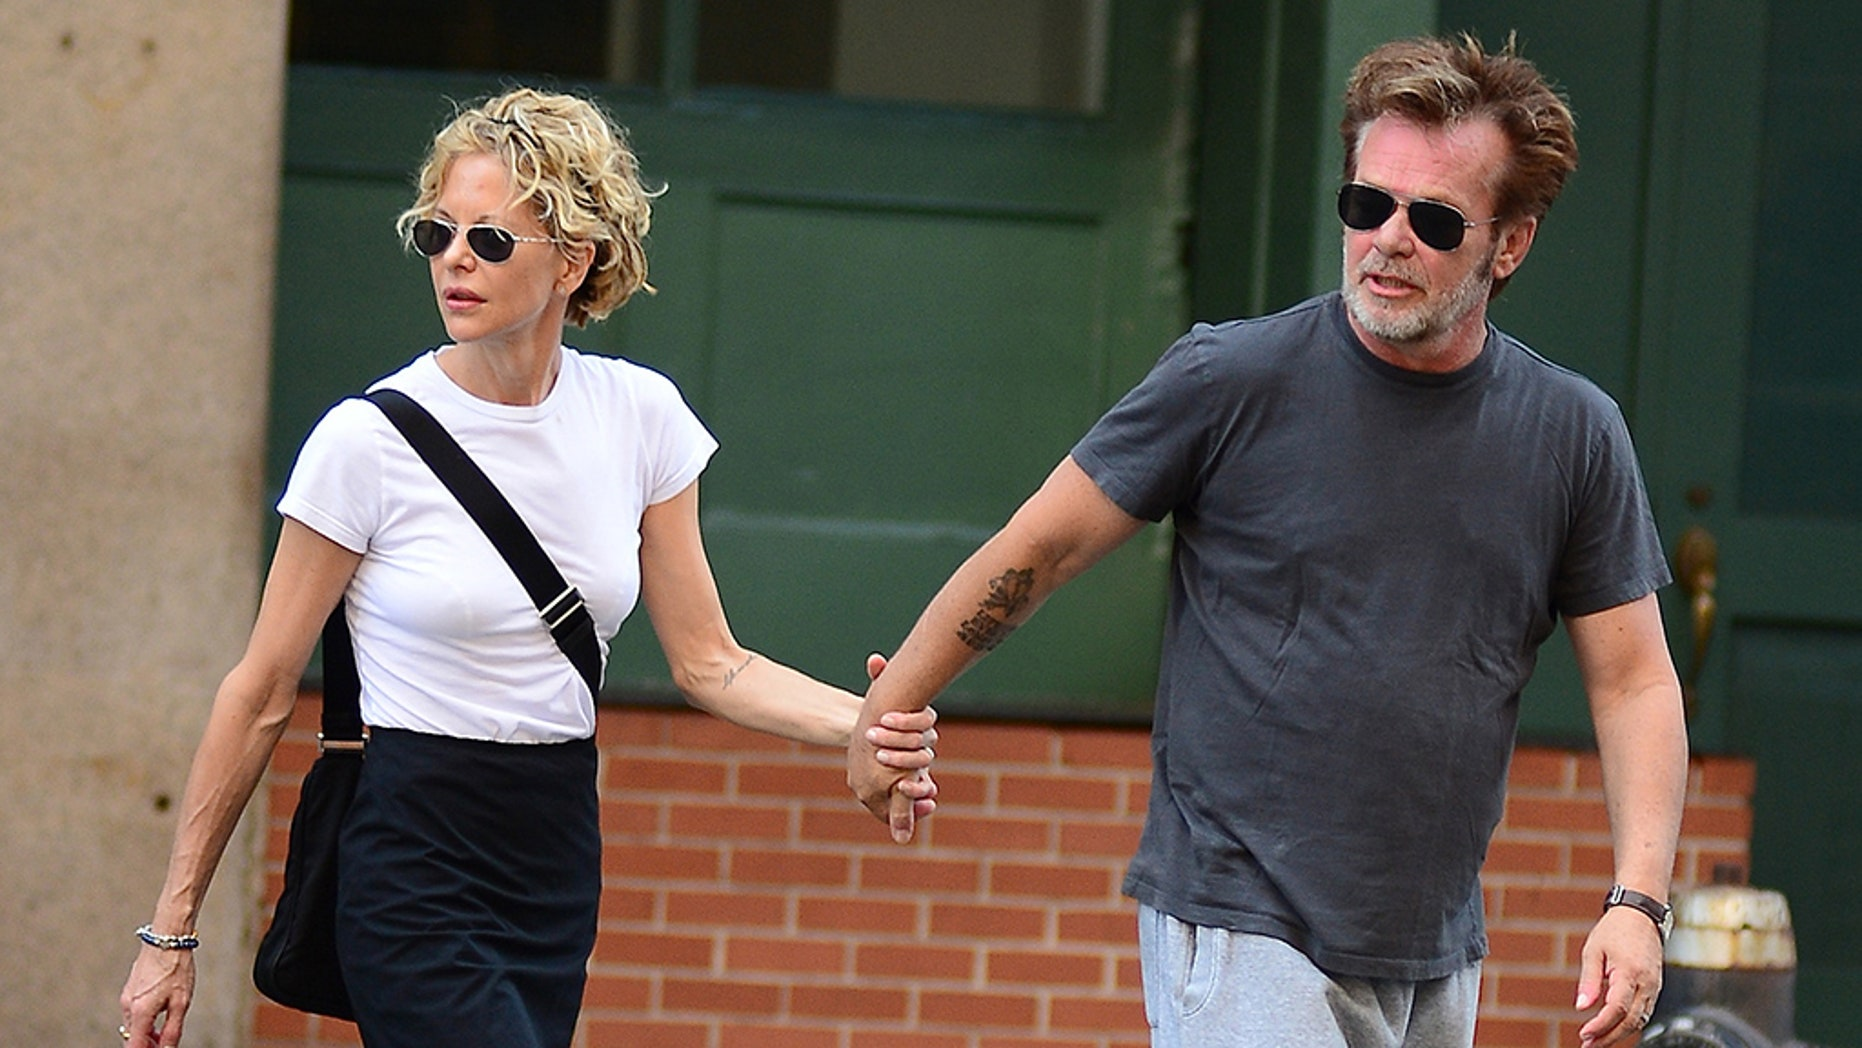 Meg Ryan and John Mellencamp confirm their engagement via Instagram